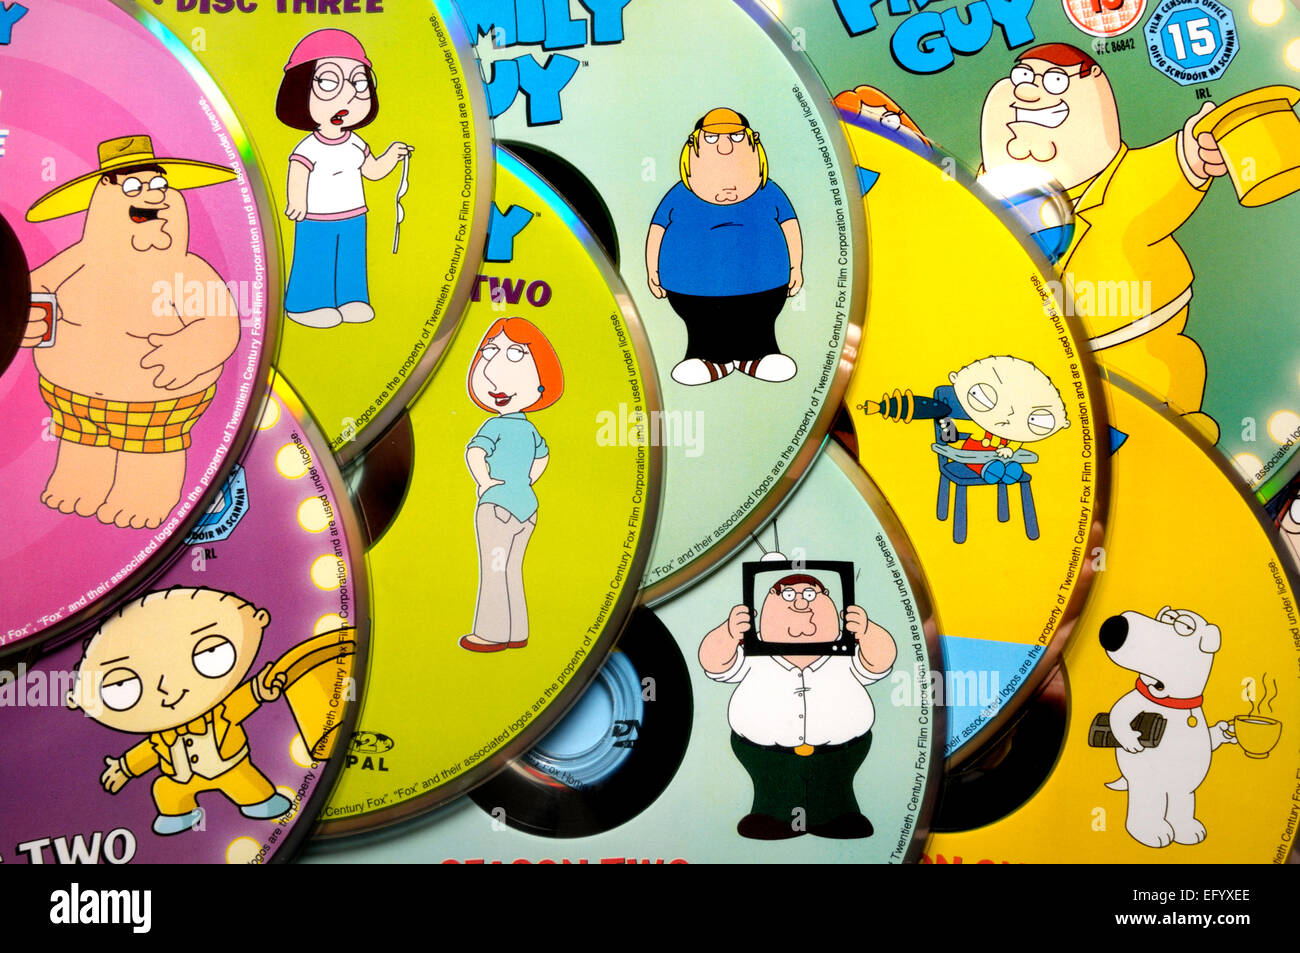 Family Guy DVDs, showing characters - Stock Image